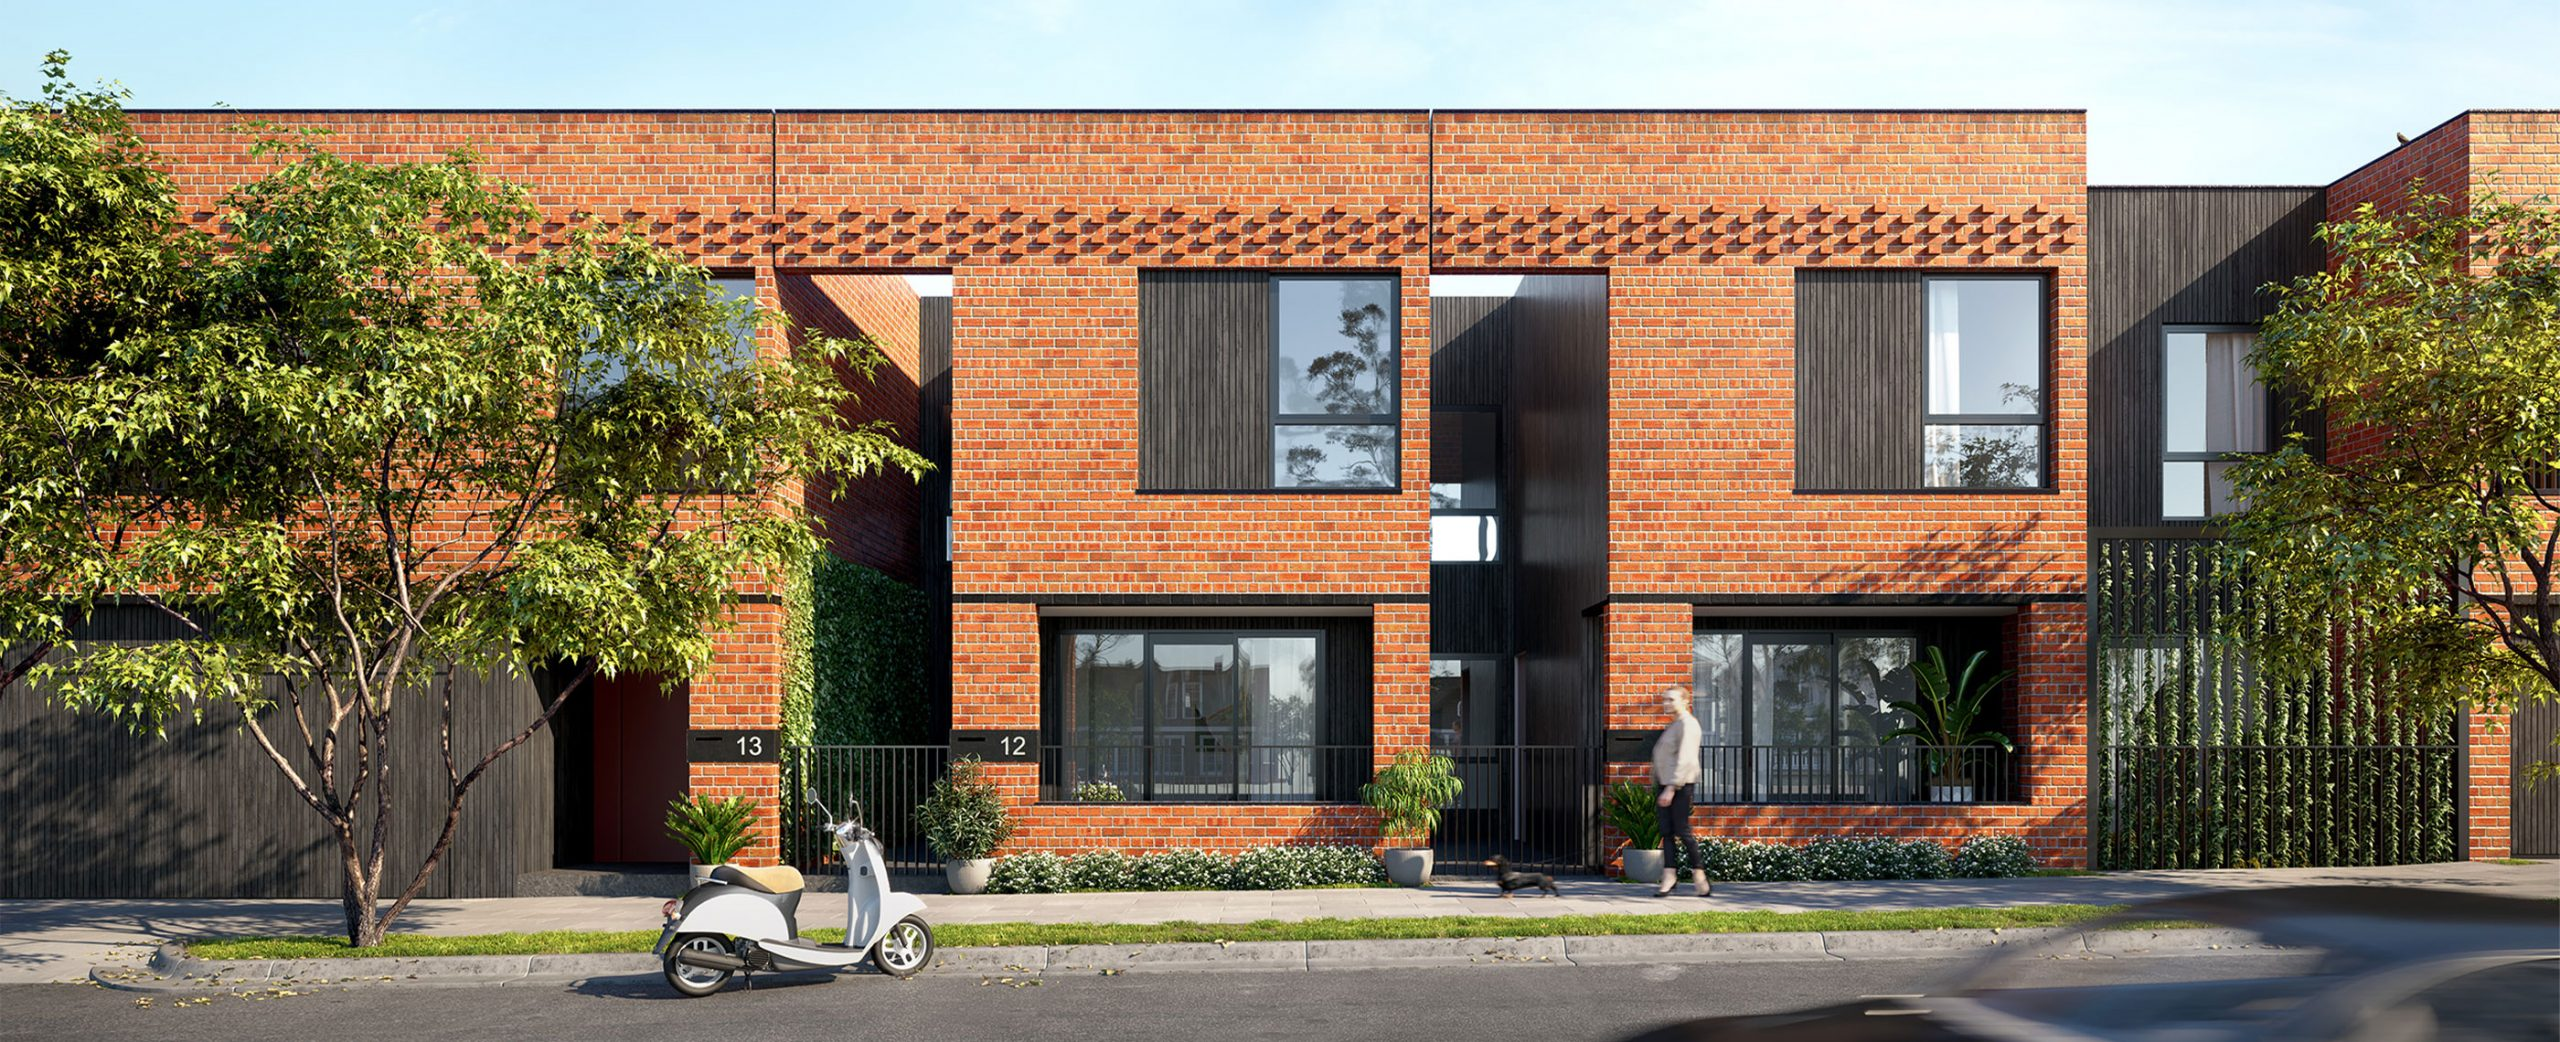 Yarraville Place Rothelowman Architecture project